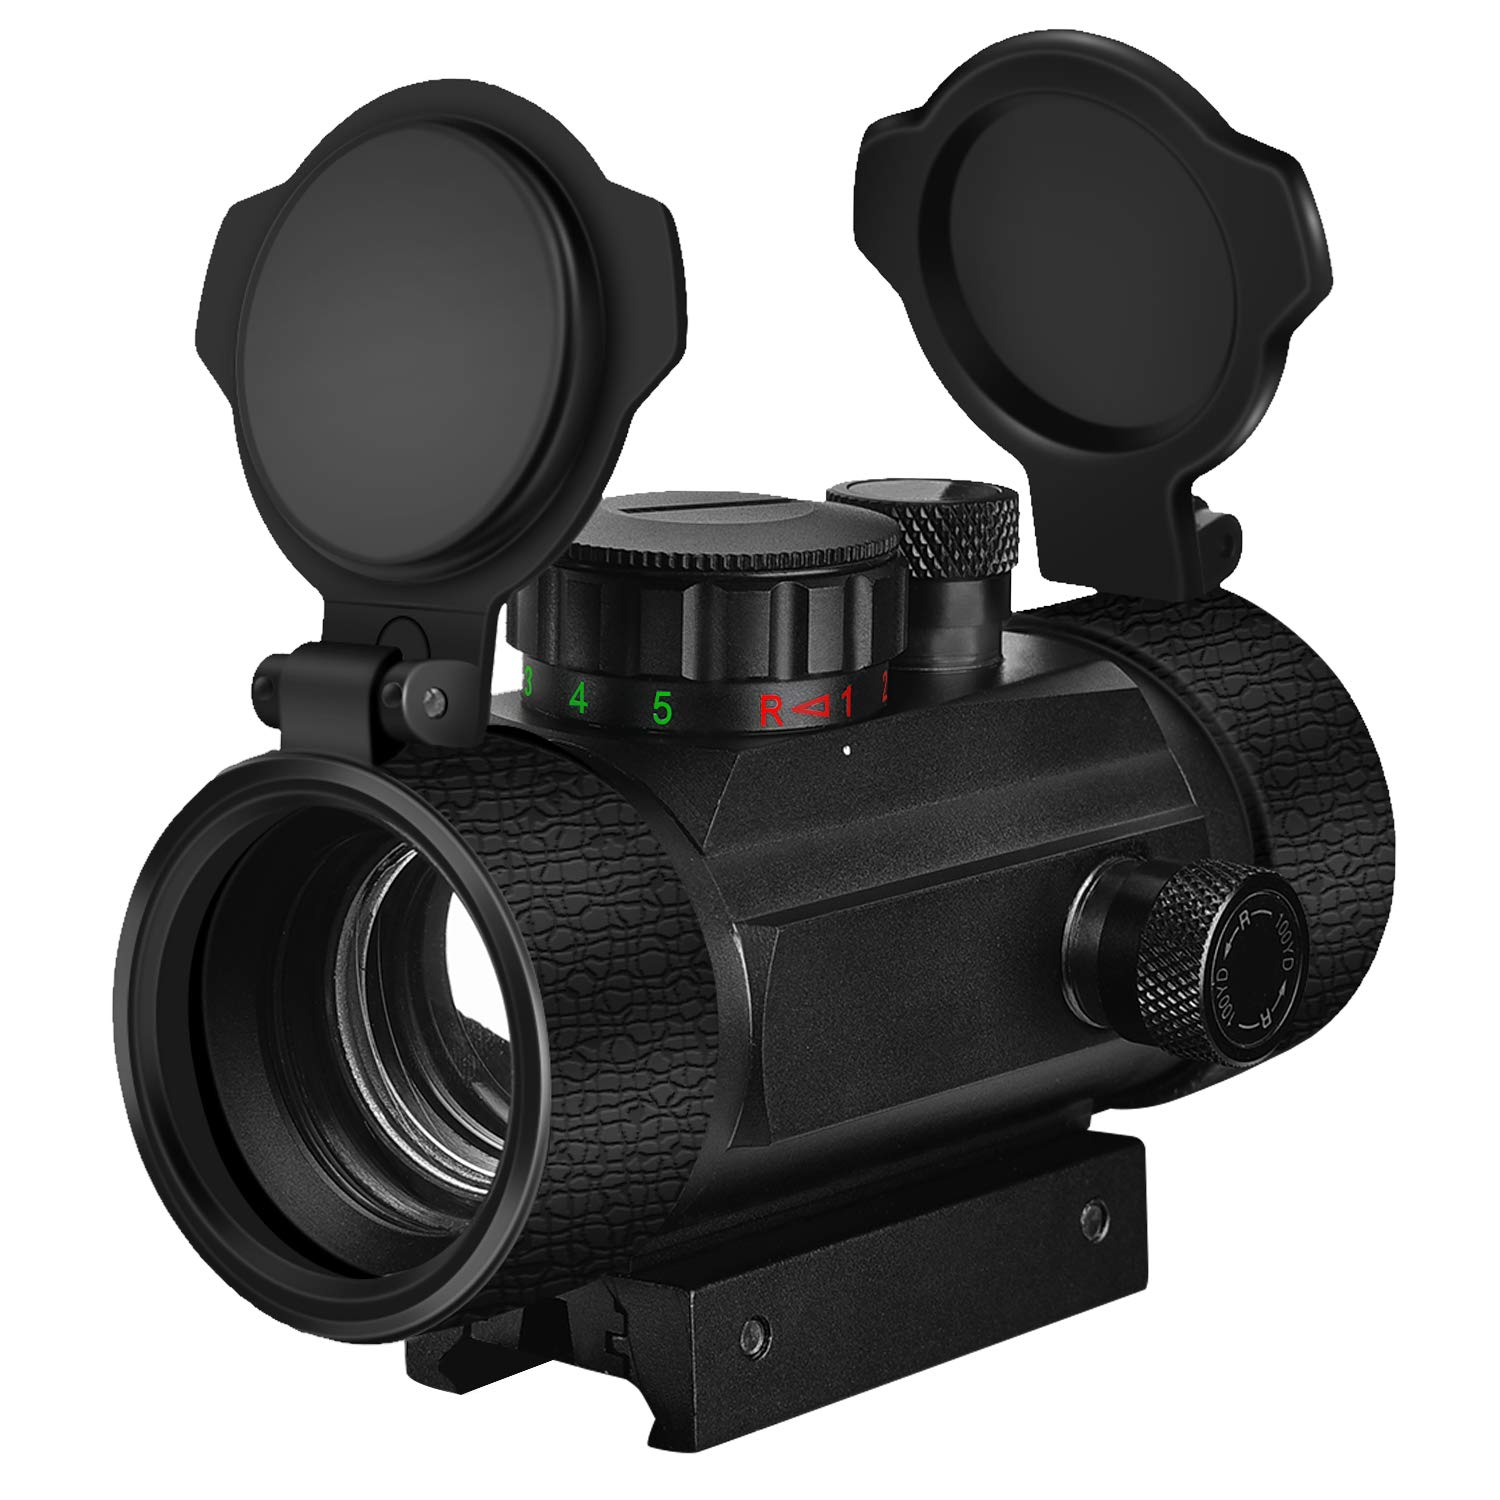 EZshoot Red Green Dot Sight Tactical Scope Reflex Sight with Lens Cap 20mm Rail Mount by EZshoot